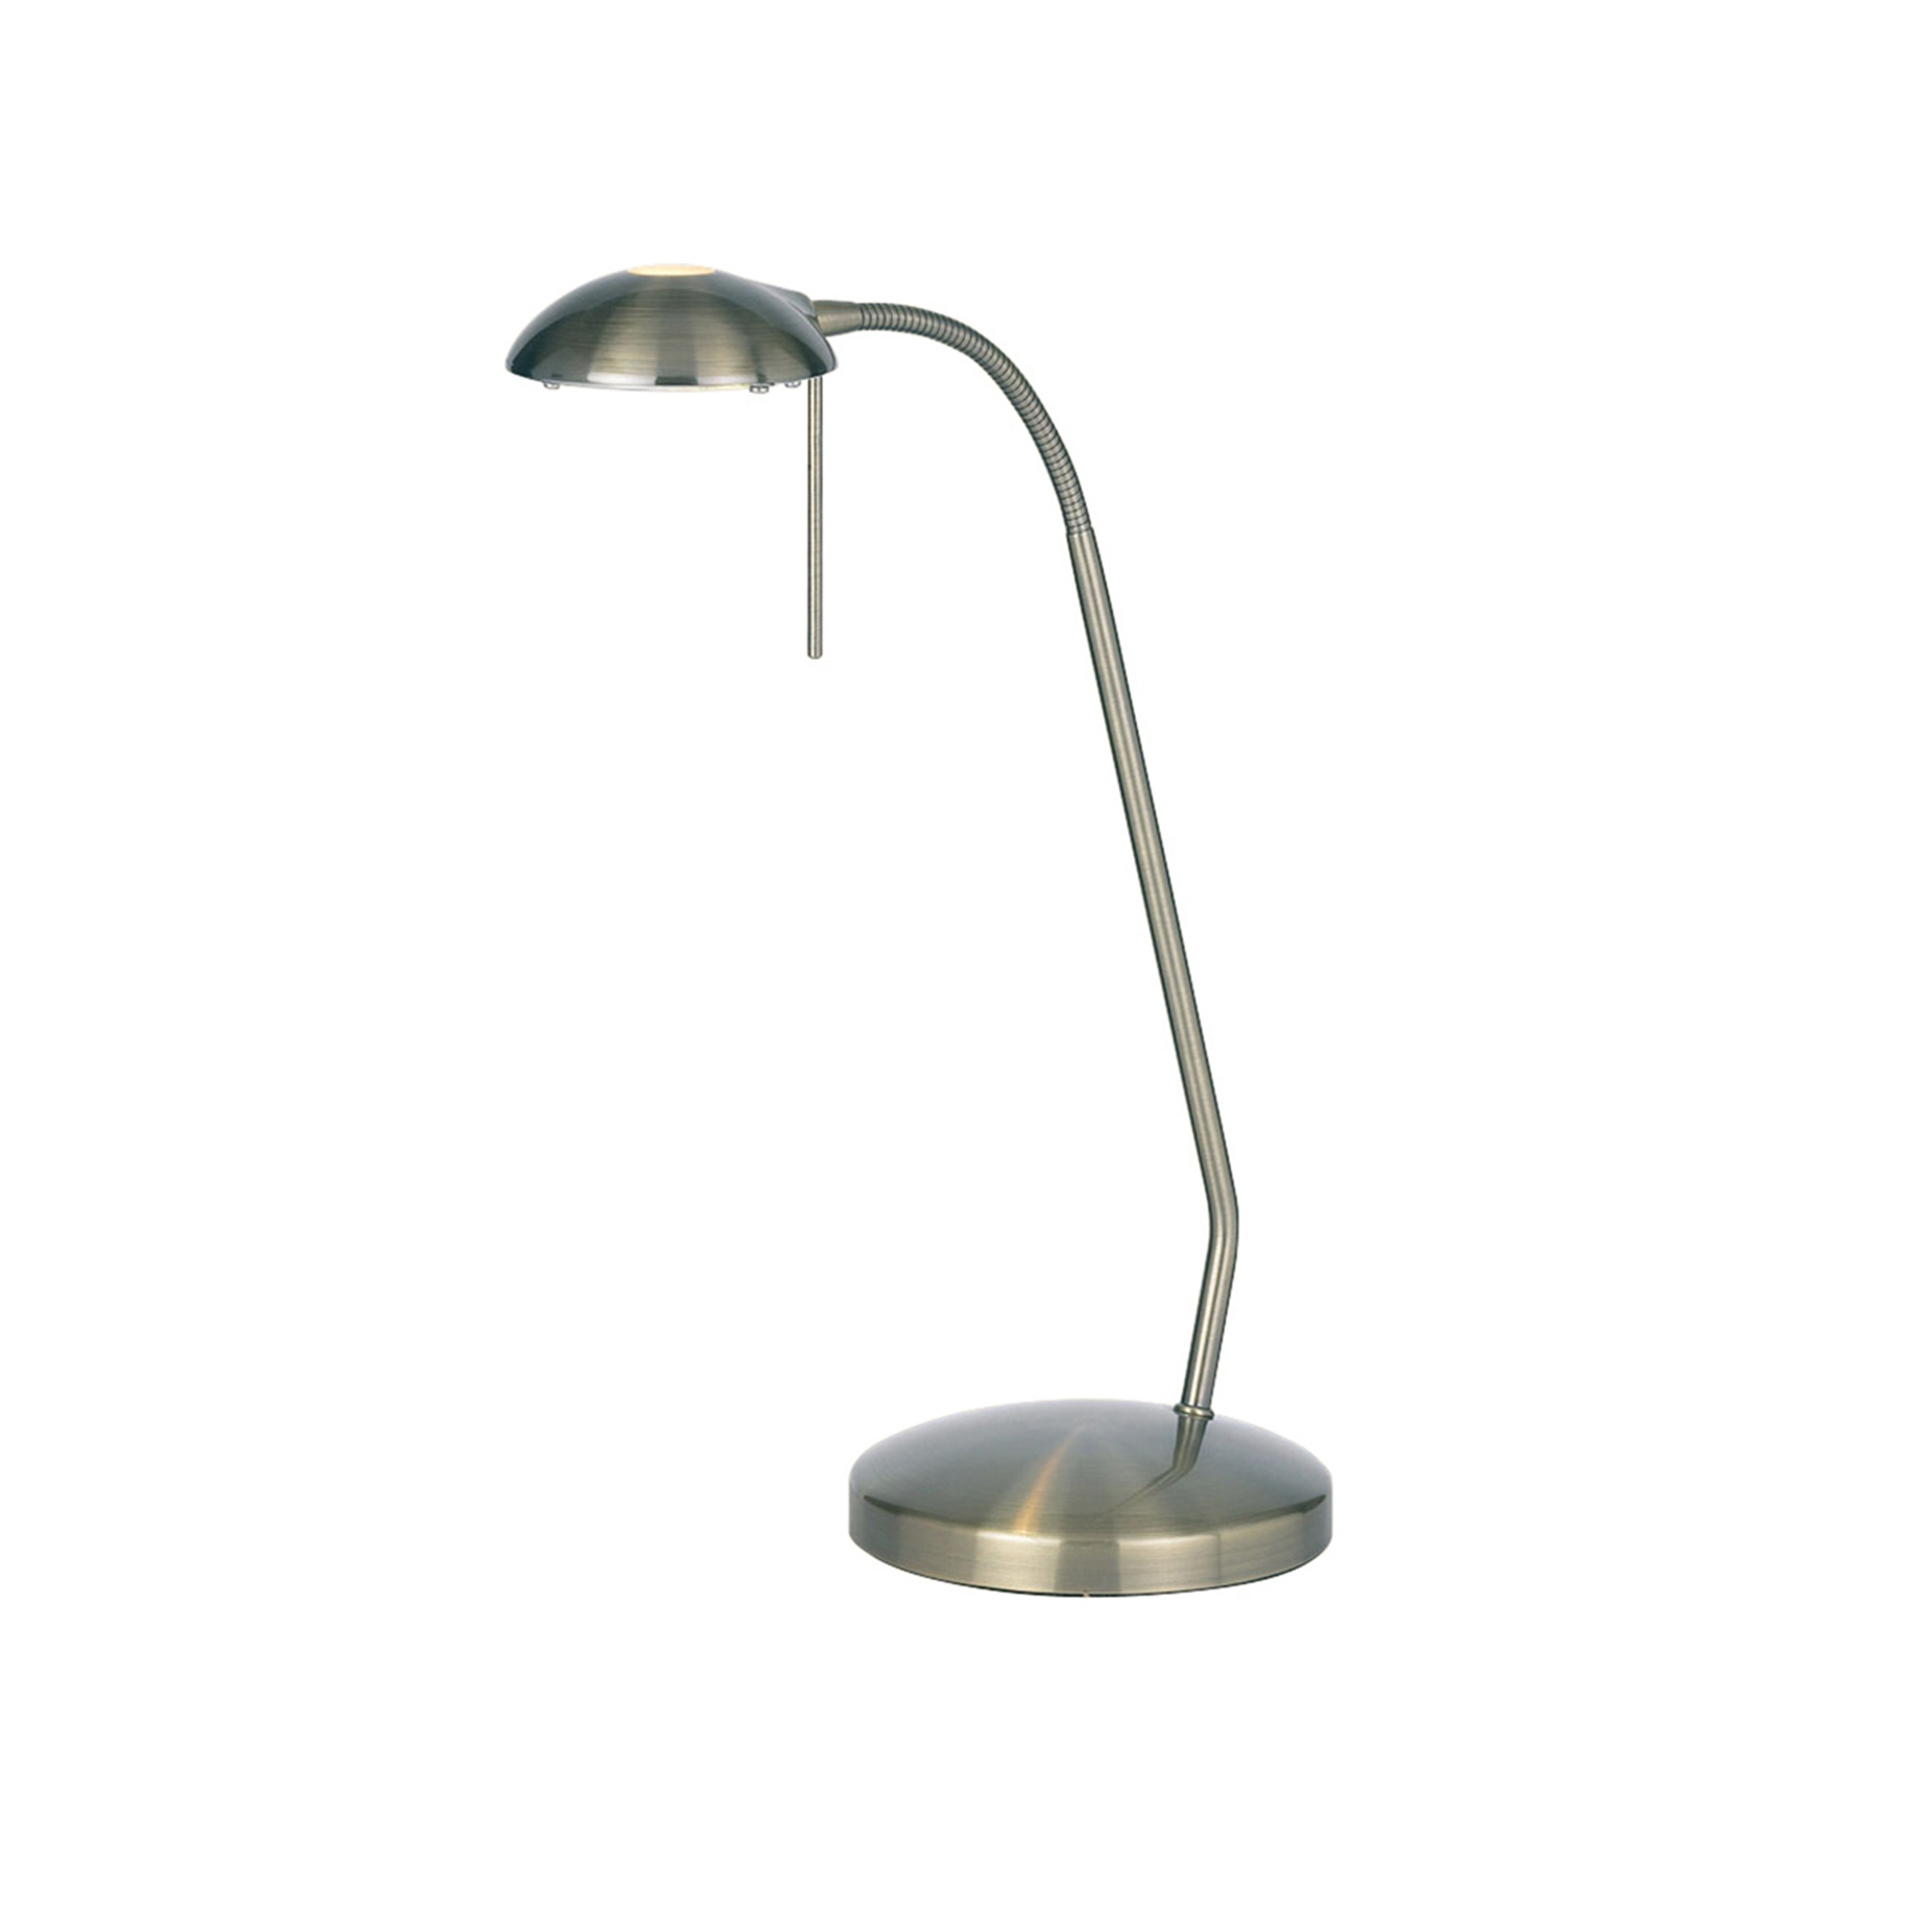 Lampen G9 Antique G9 Touch Table Lamp